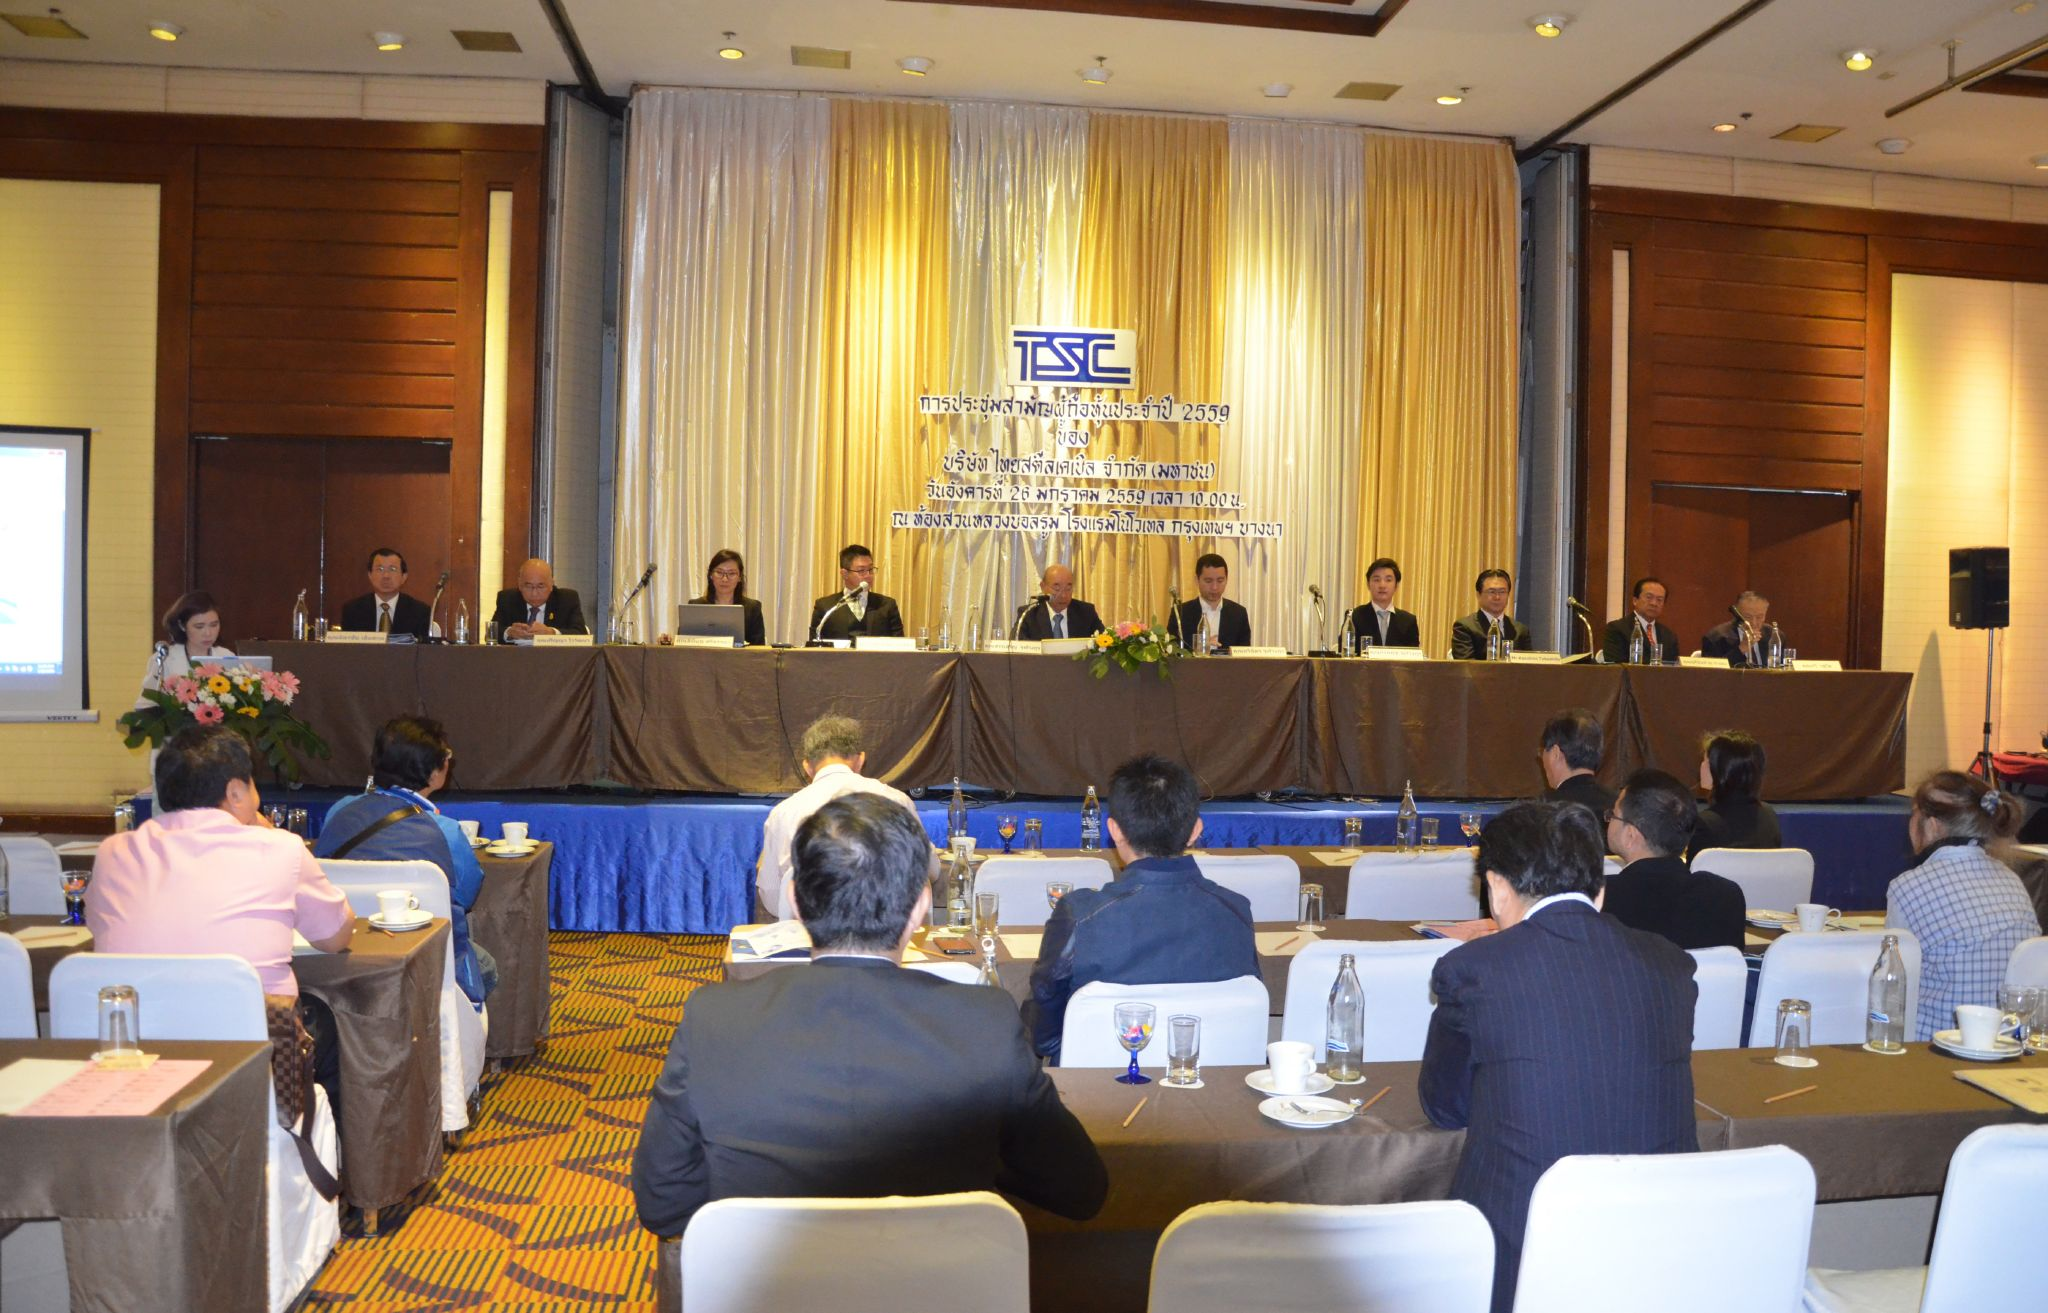 Annual General Meeting of Shareholders of 2016